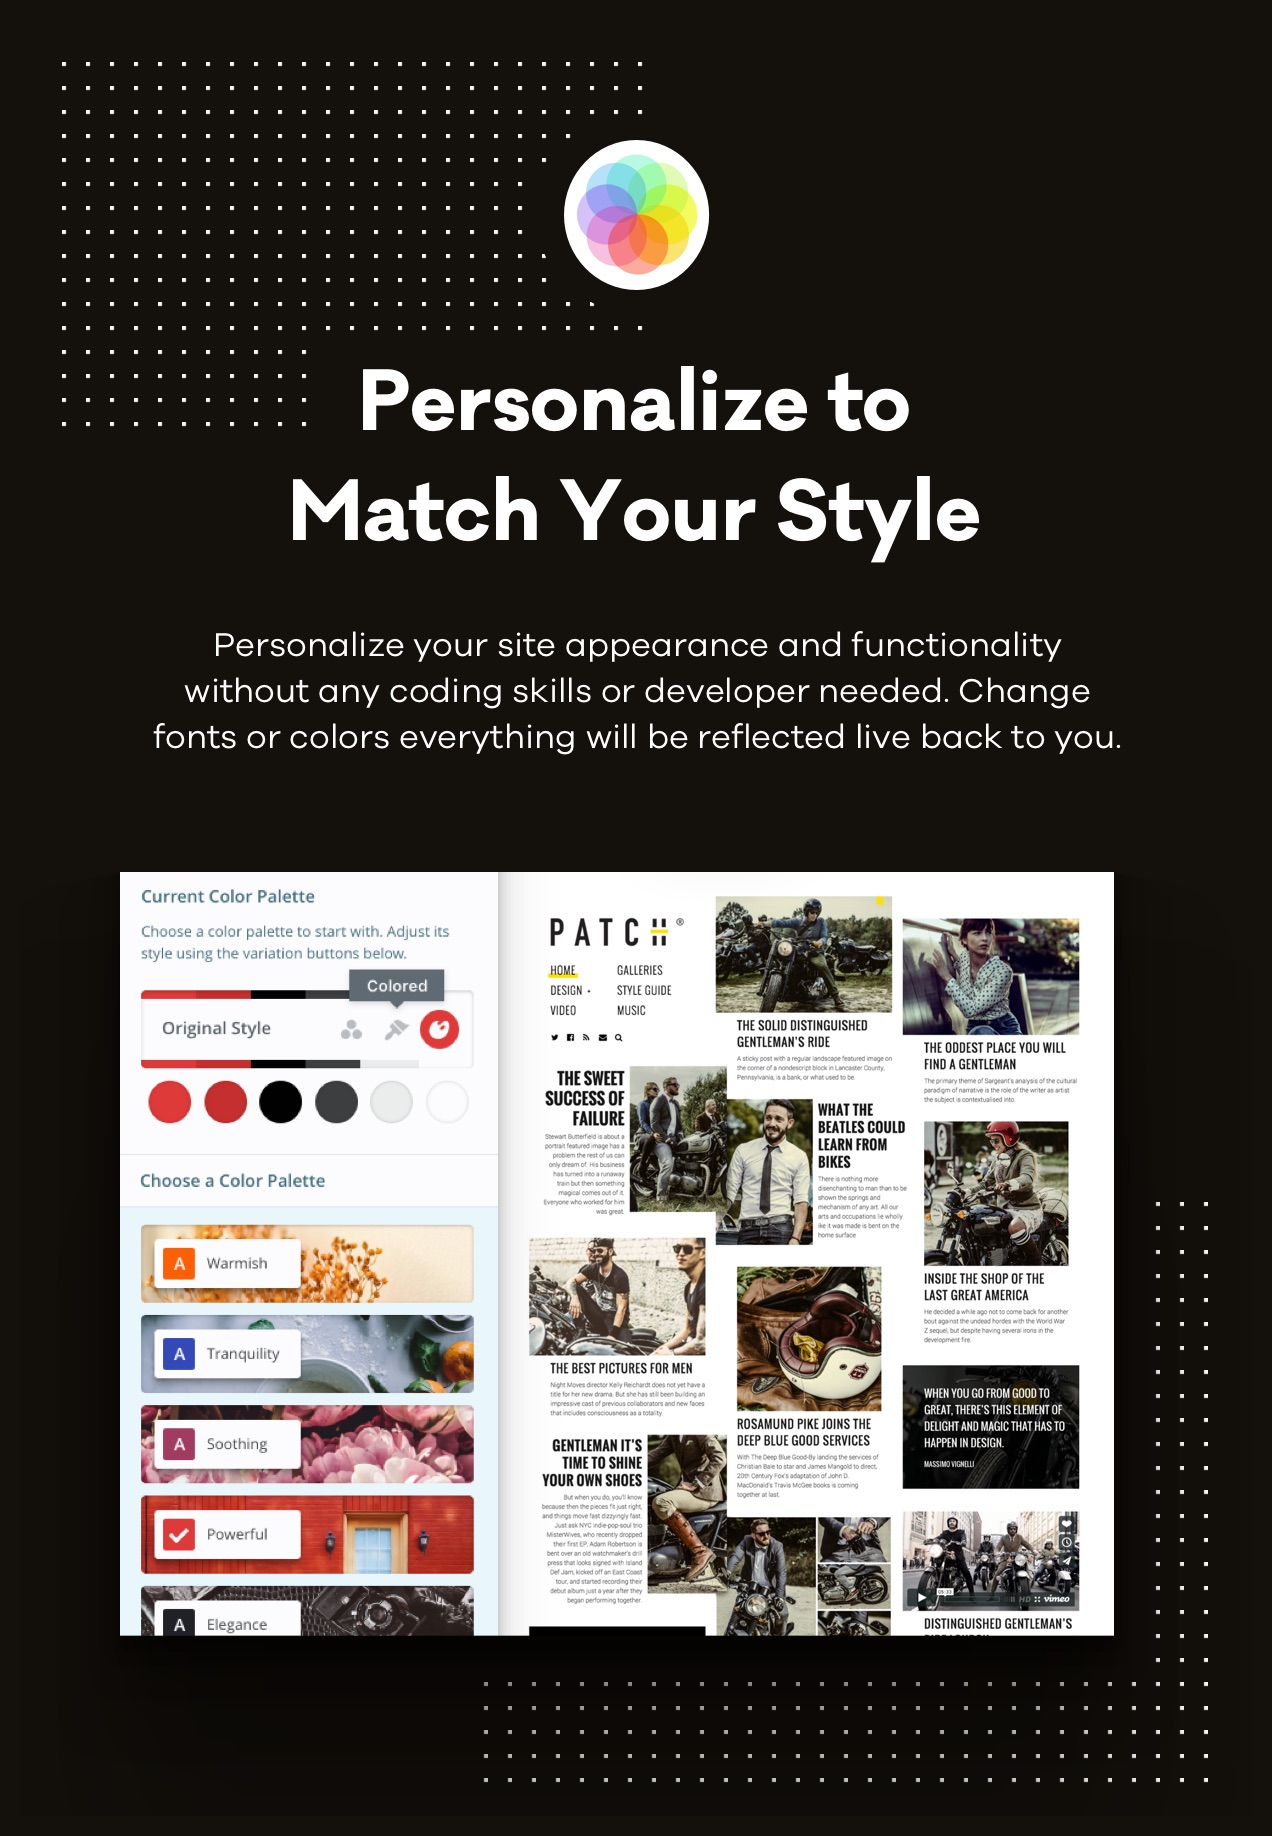 Personalize to Match Your Style